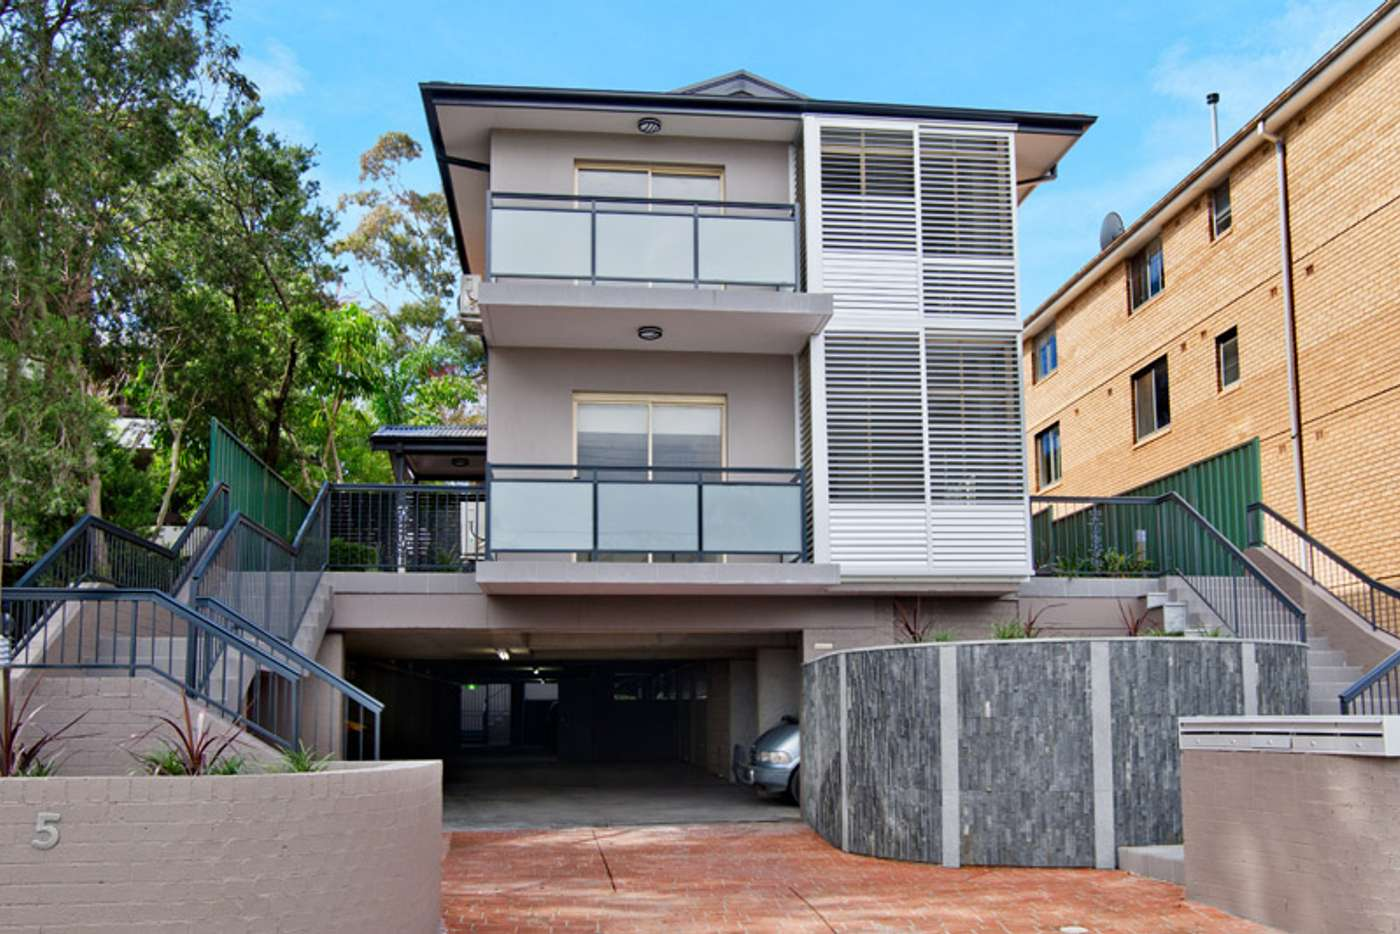 Main view of Homely apartment listing, 3/5 Morrison Road, Gladesville NSW 2111